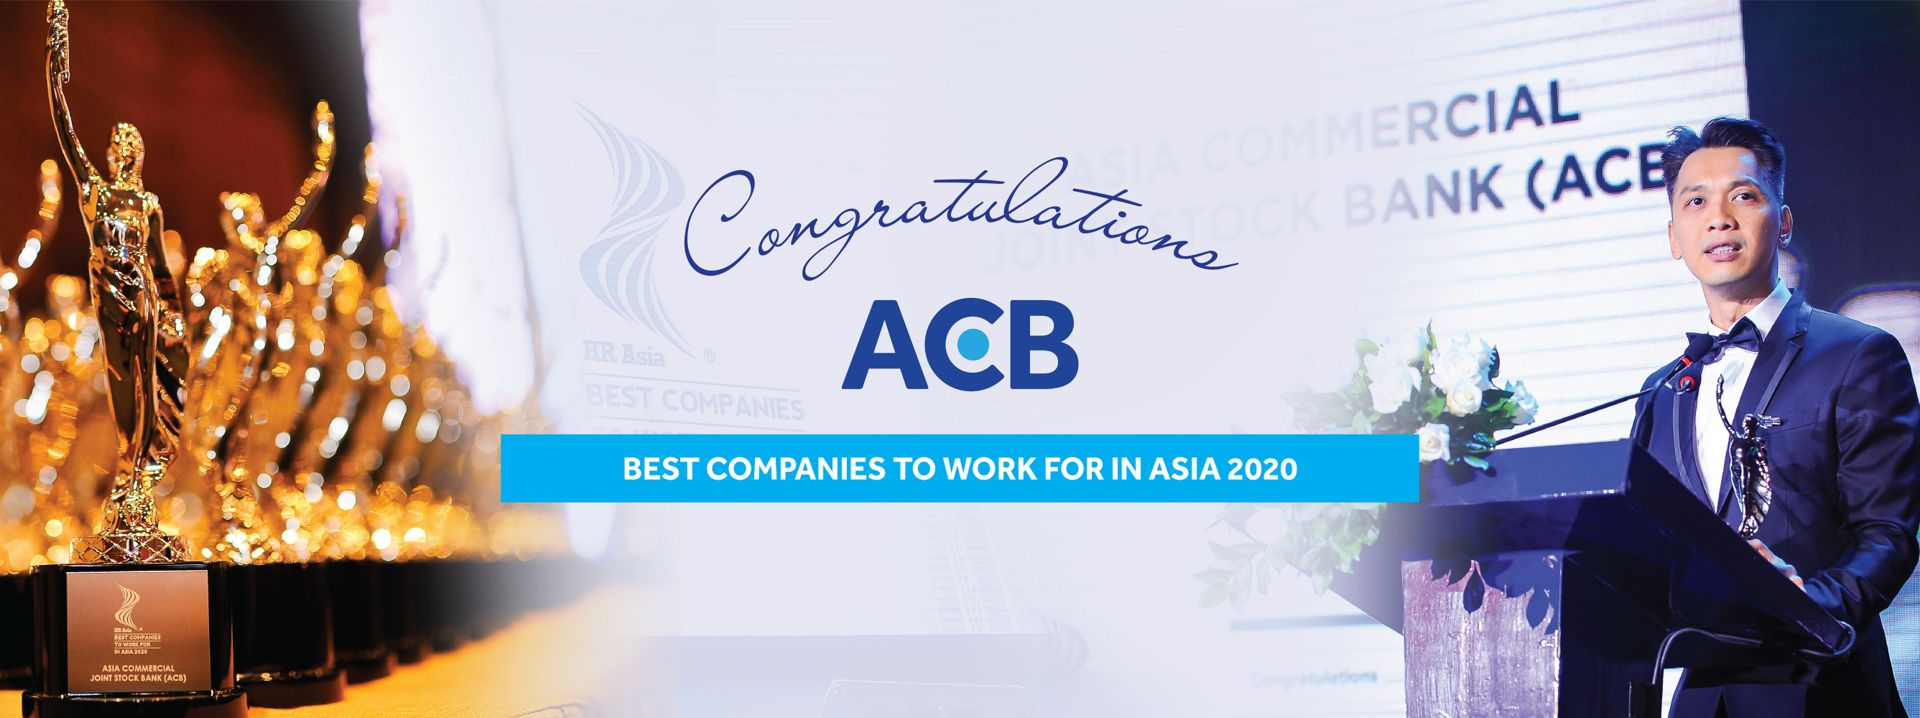 """Giải thưởng """"ACB - Best companies to work for in Asia 2020"""""""